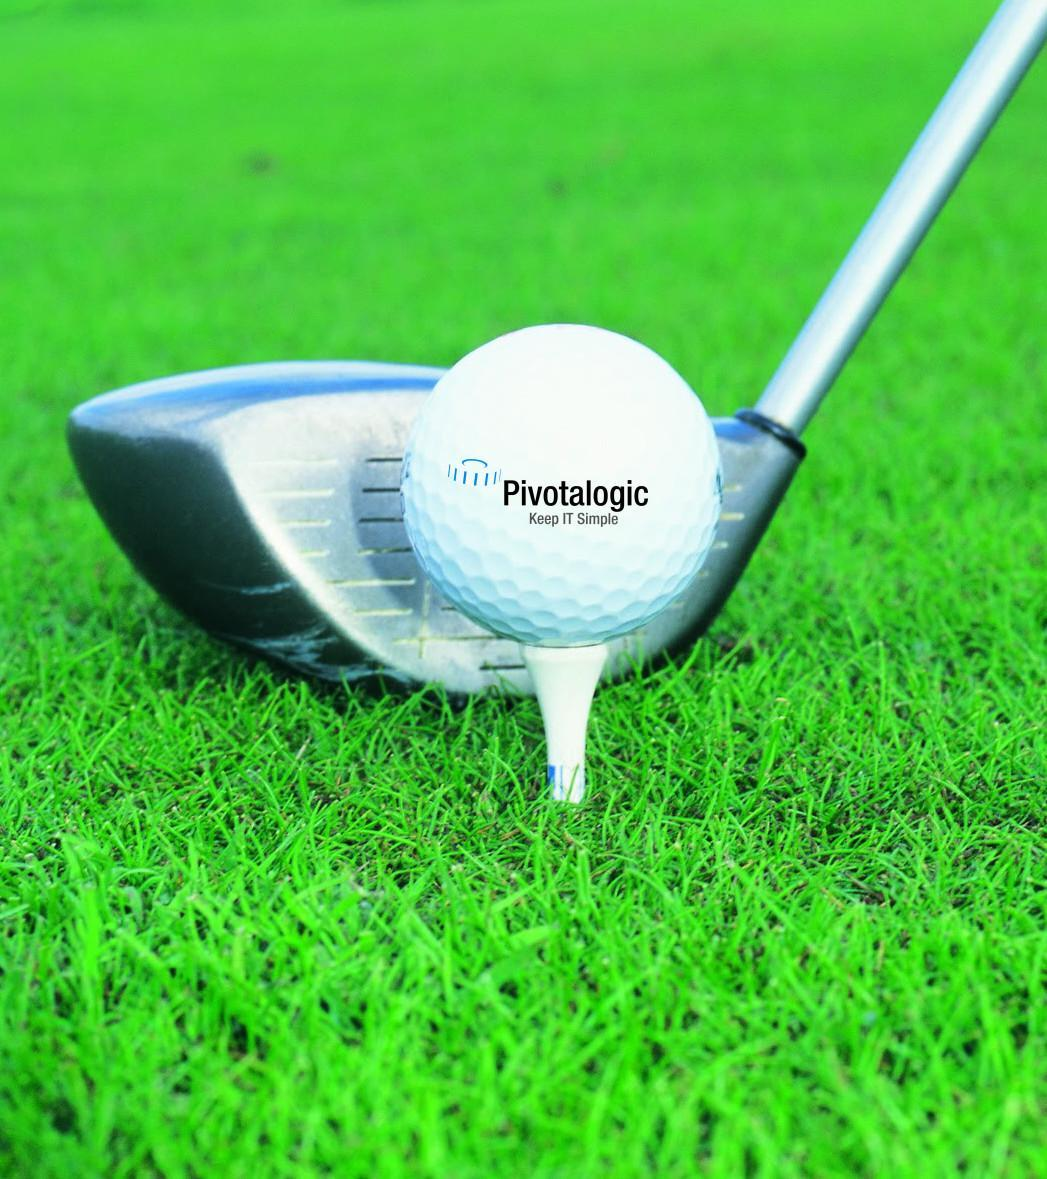 4th Annual Pivotalogic Golf Tournament- Benefiting Feed My Starving Children